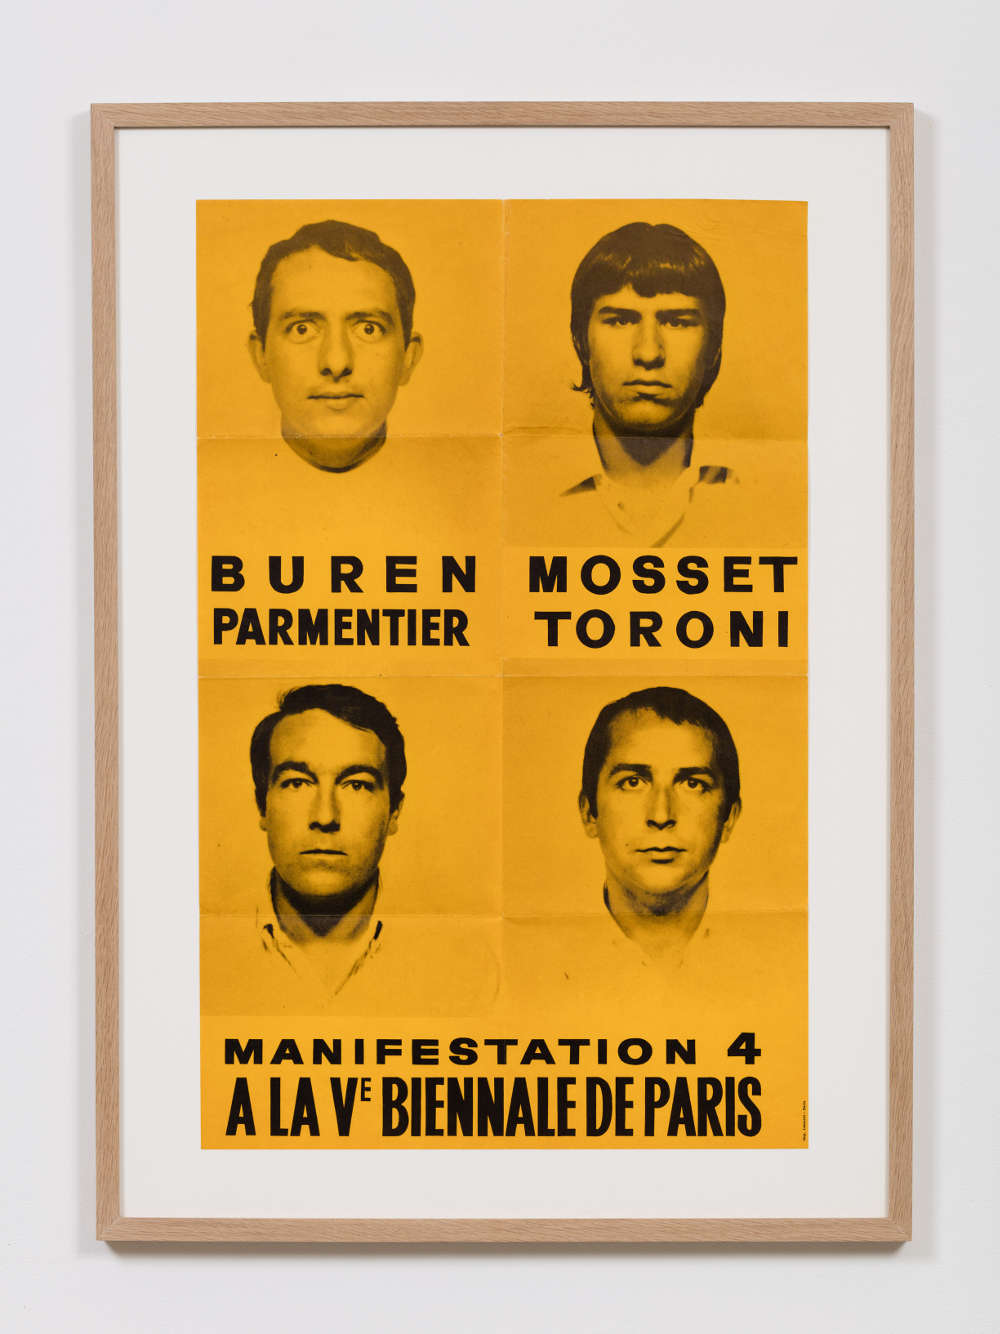 Poster for Manifestation 4, at 4th Paris Biennale, September 1967, which was the forth and last appearance of the BMPT group, 595 x 380mm